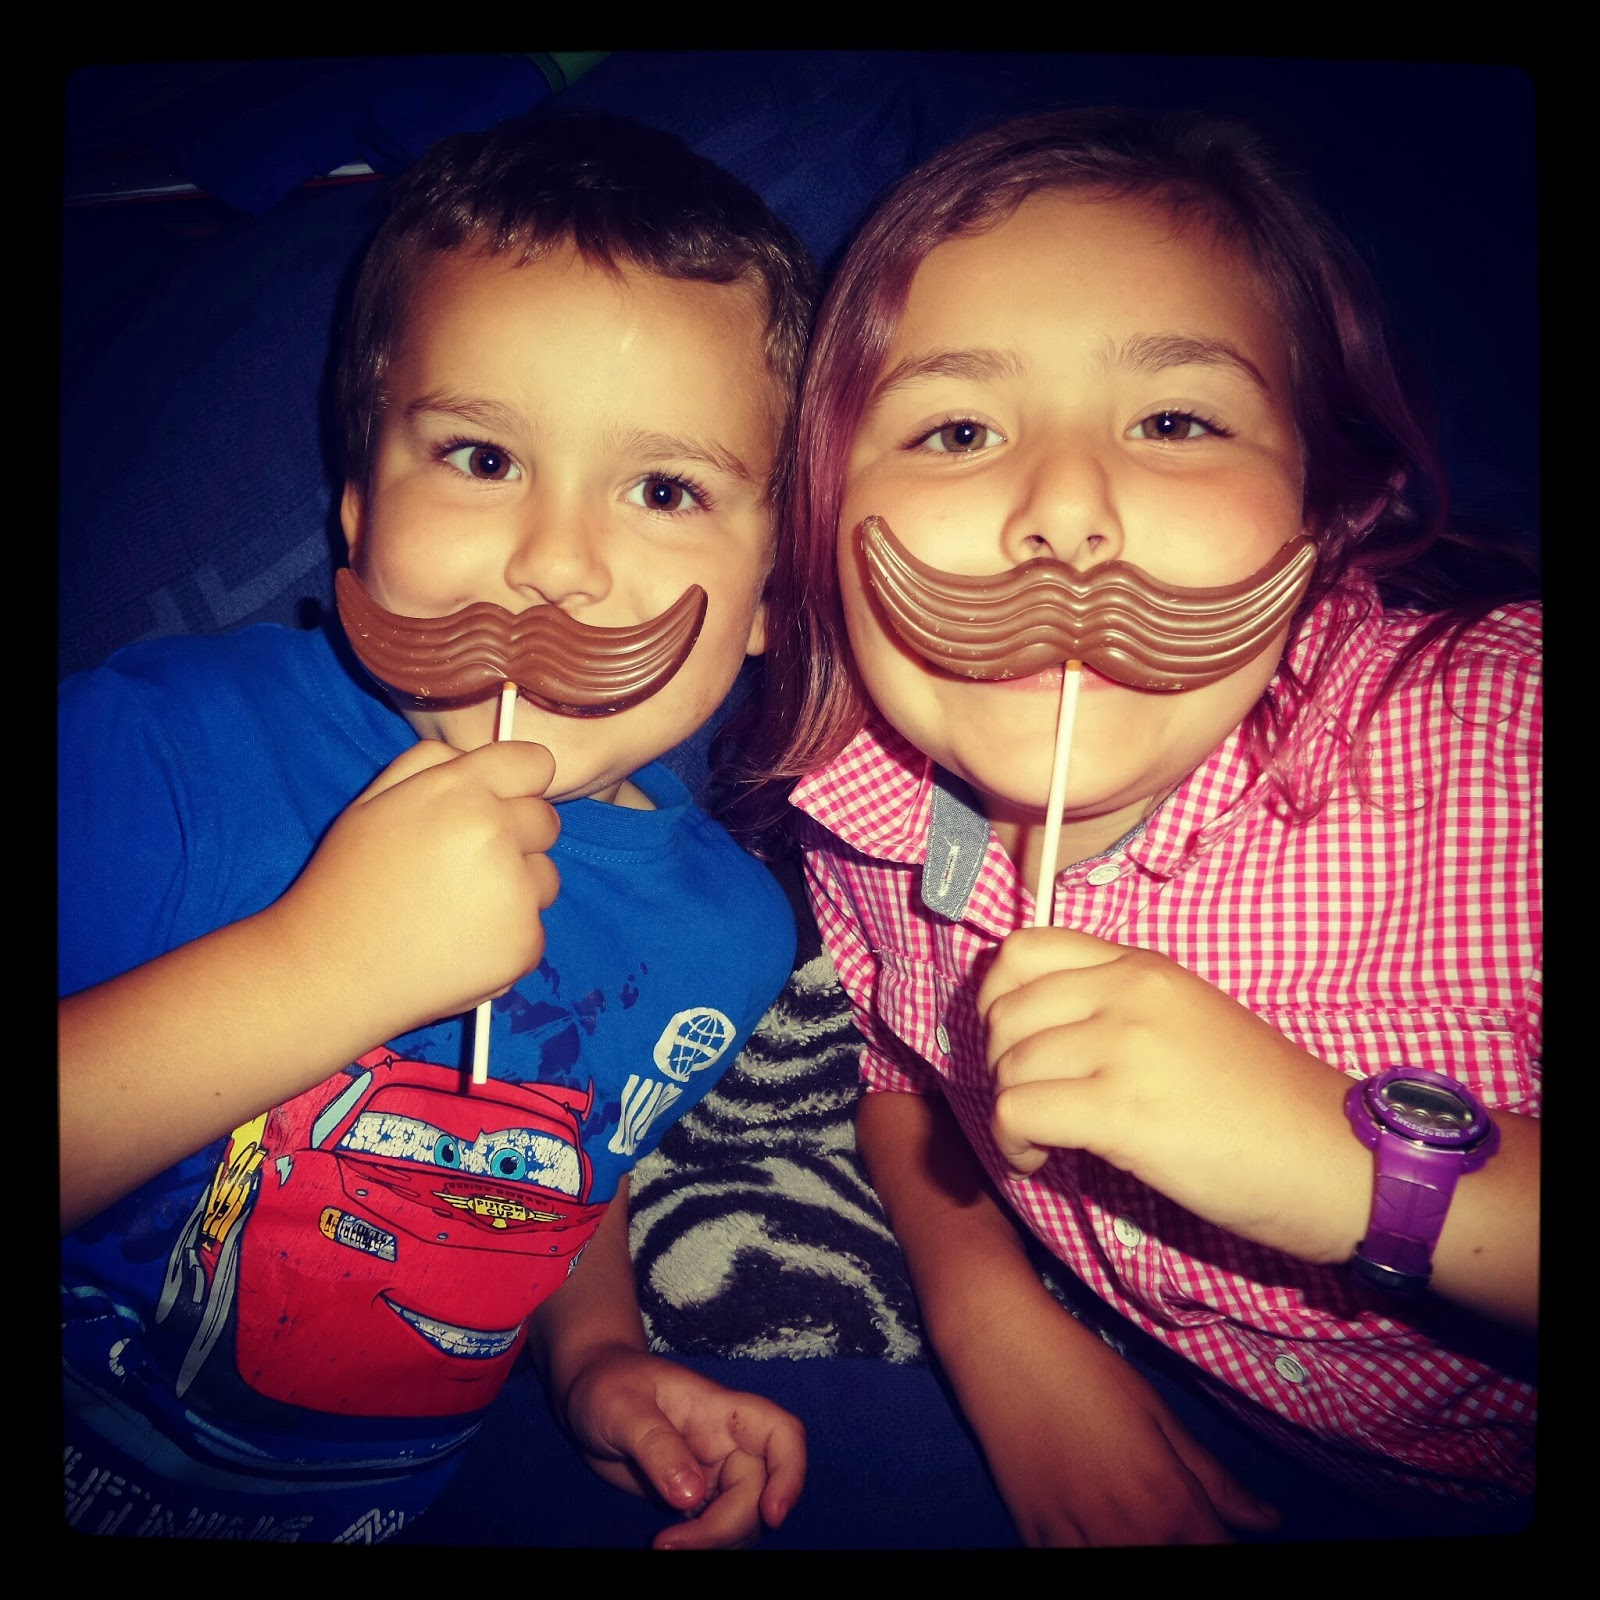 My brother and I being daft with moustache lollys